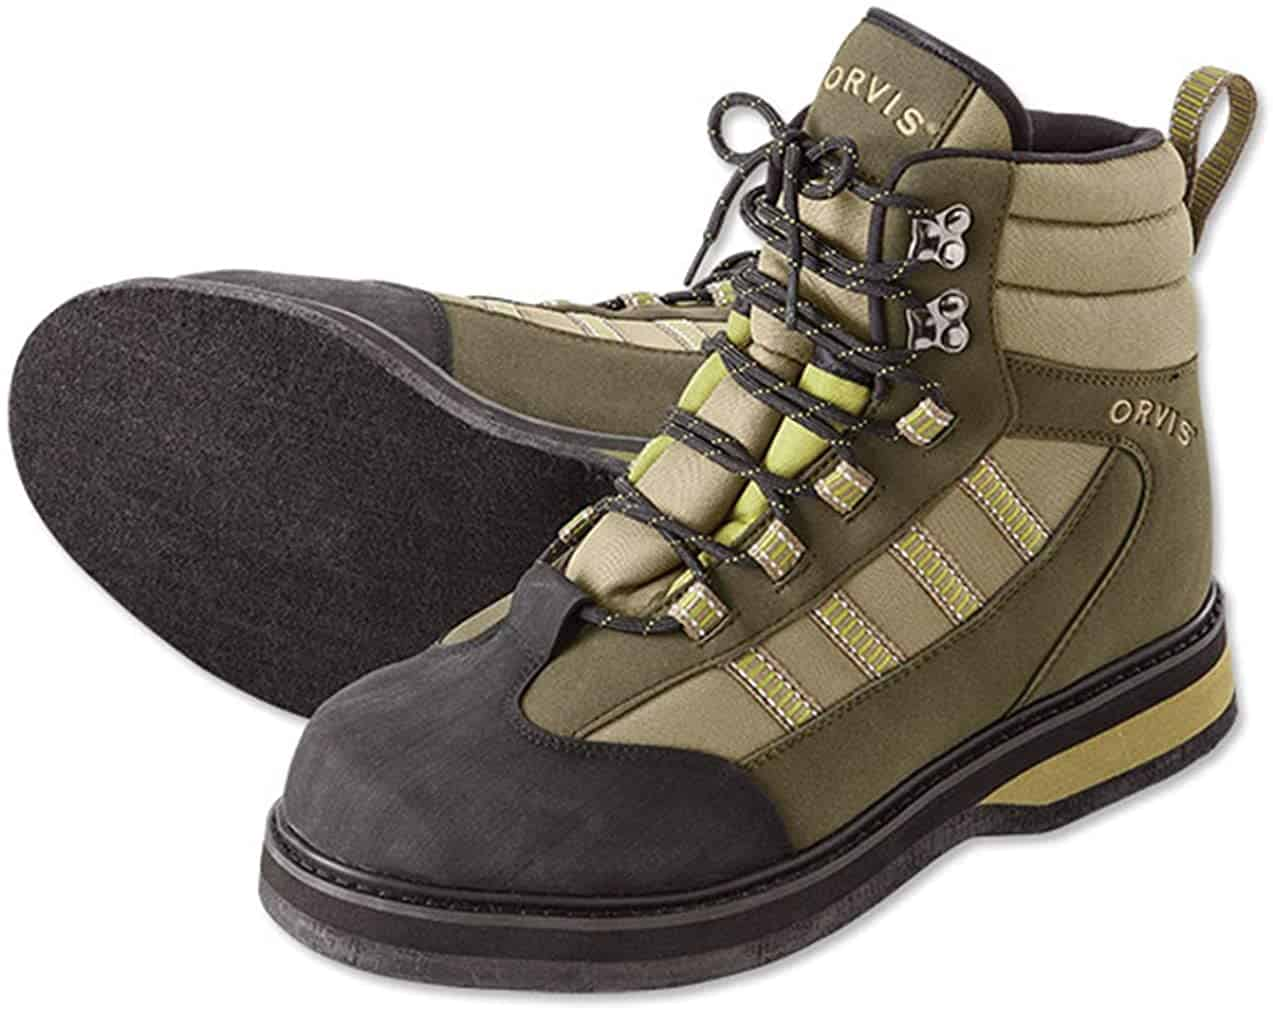 Encounter Wading Boots by Orvis